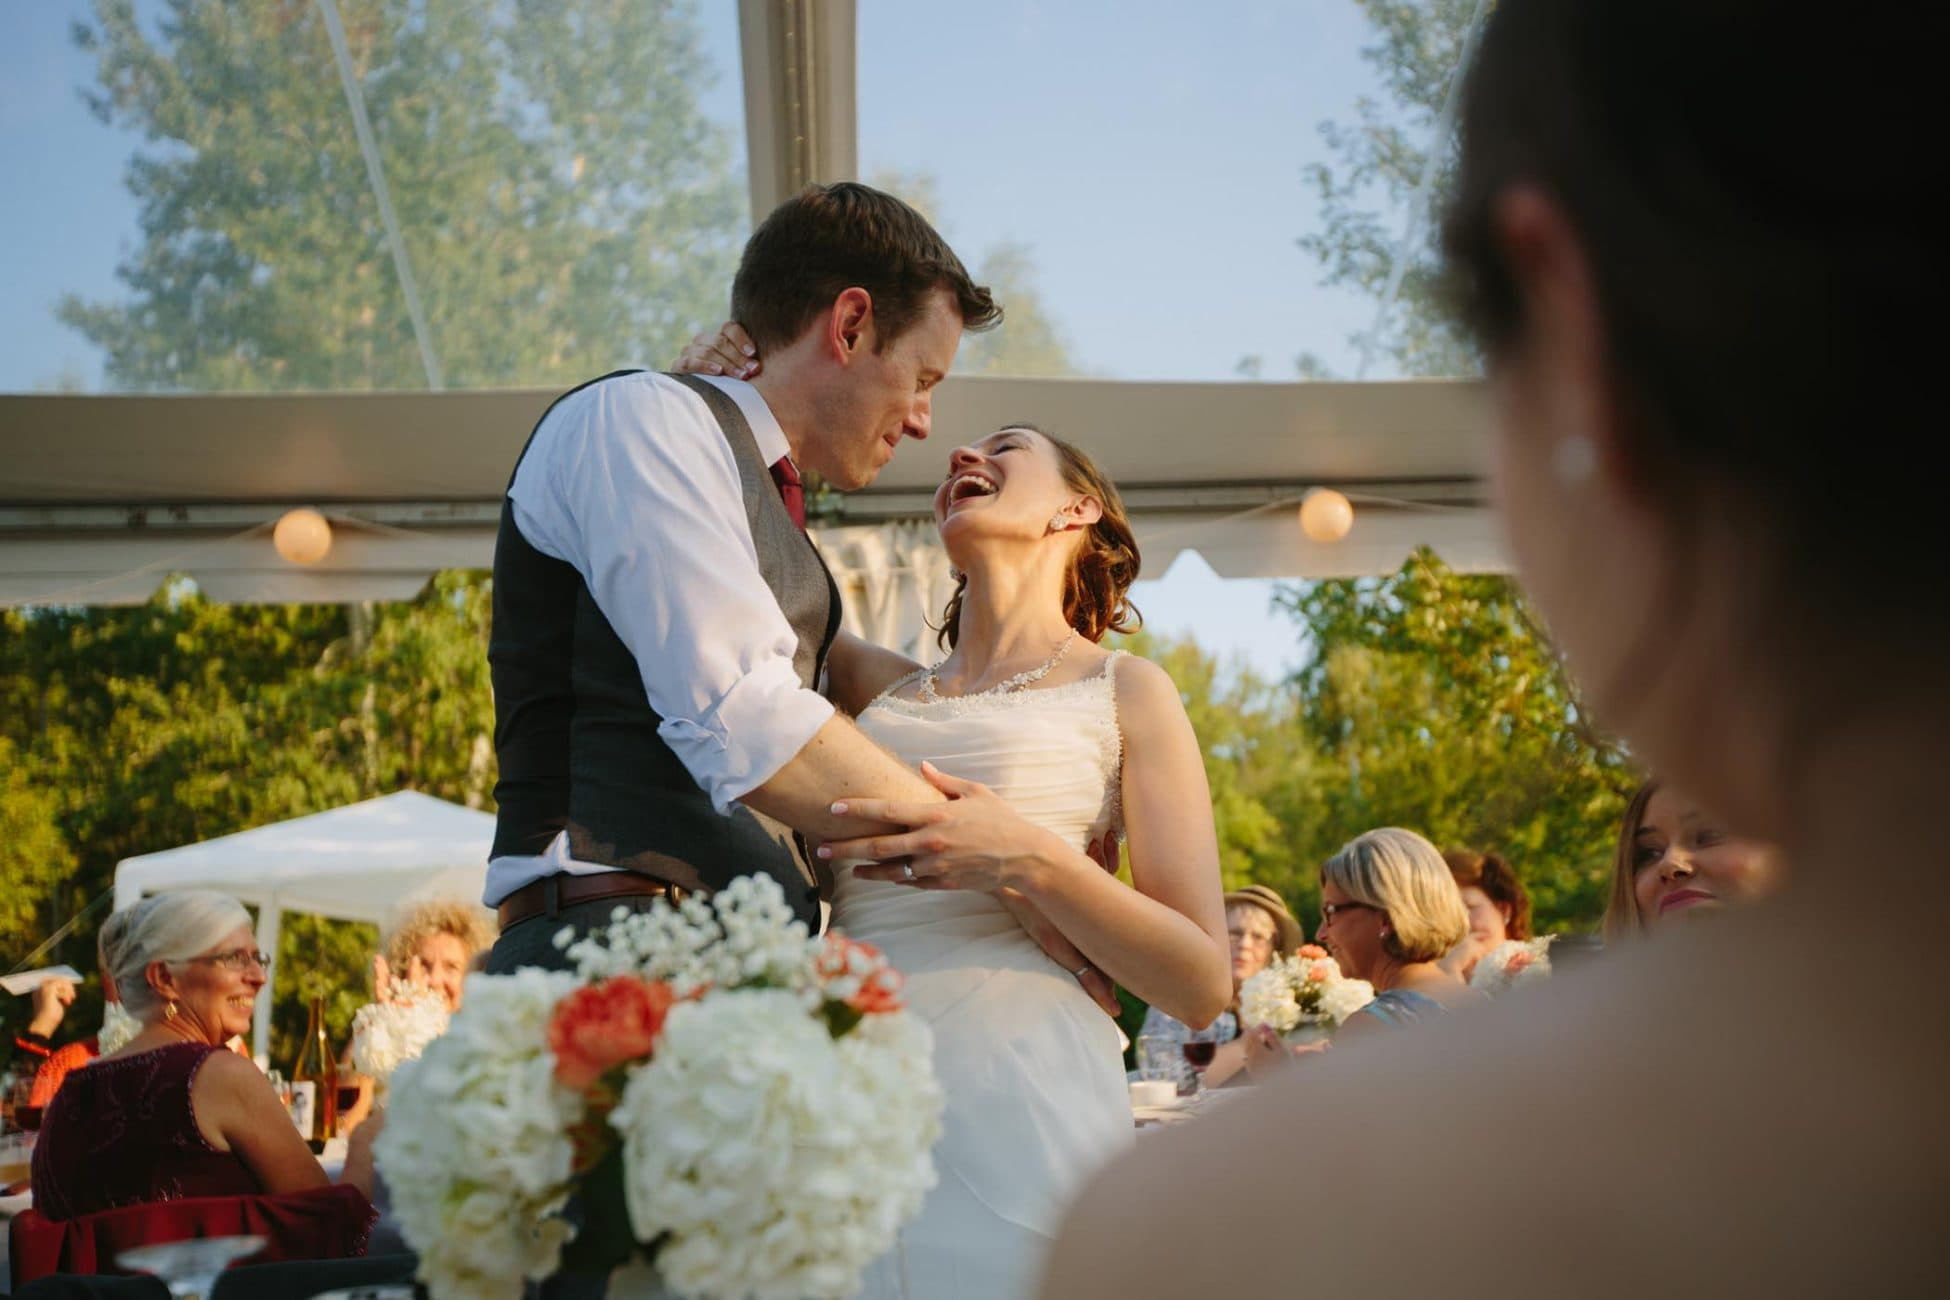 The groom swings back the bride and she leans back and laughs during a sunset backyard wedding photograph in Toronto.